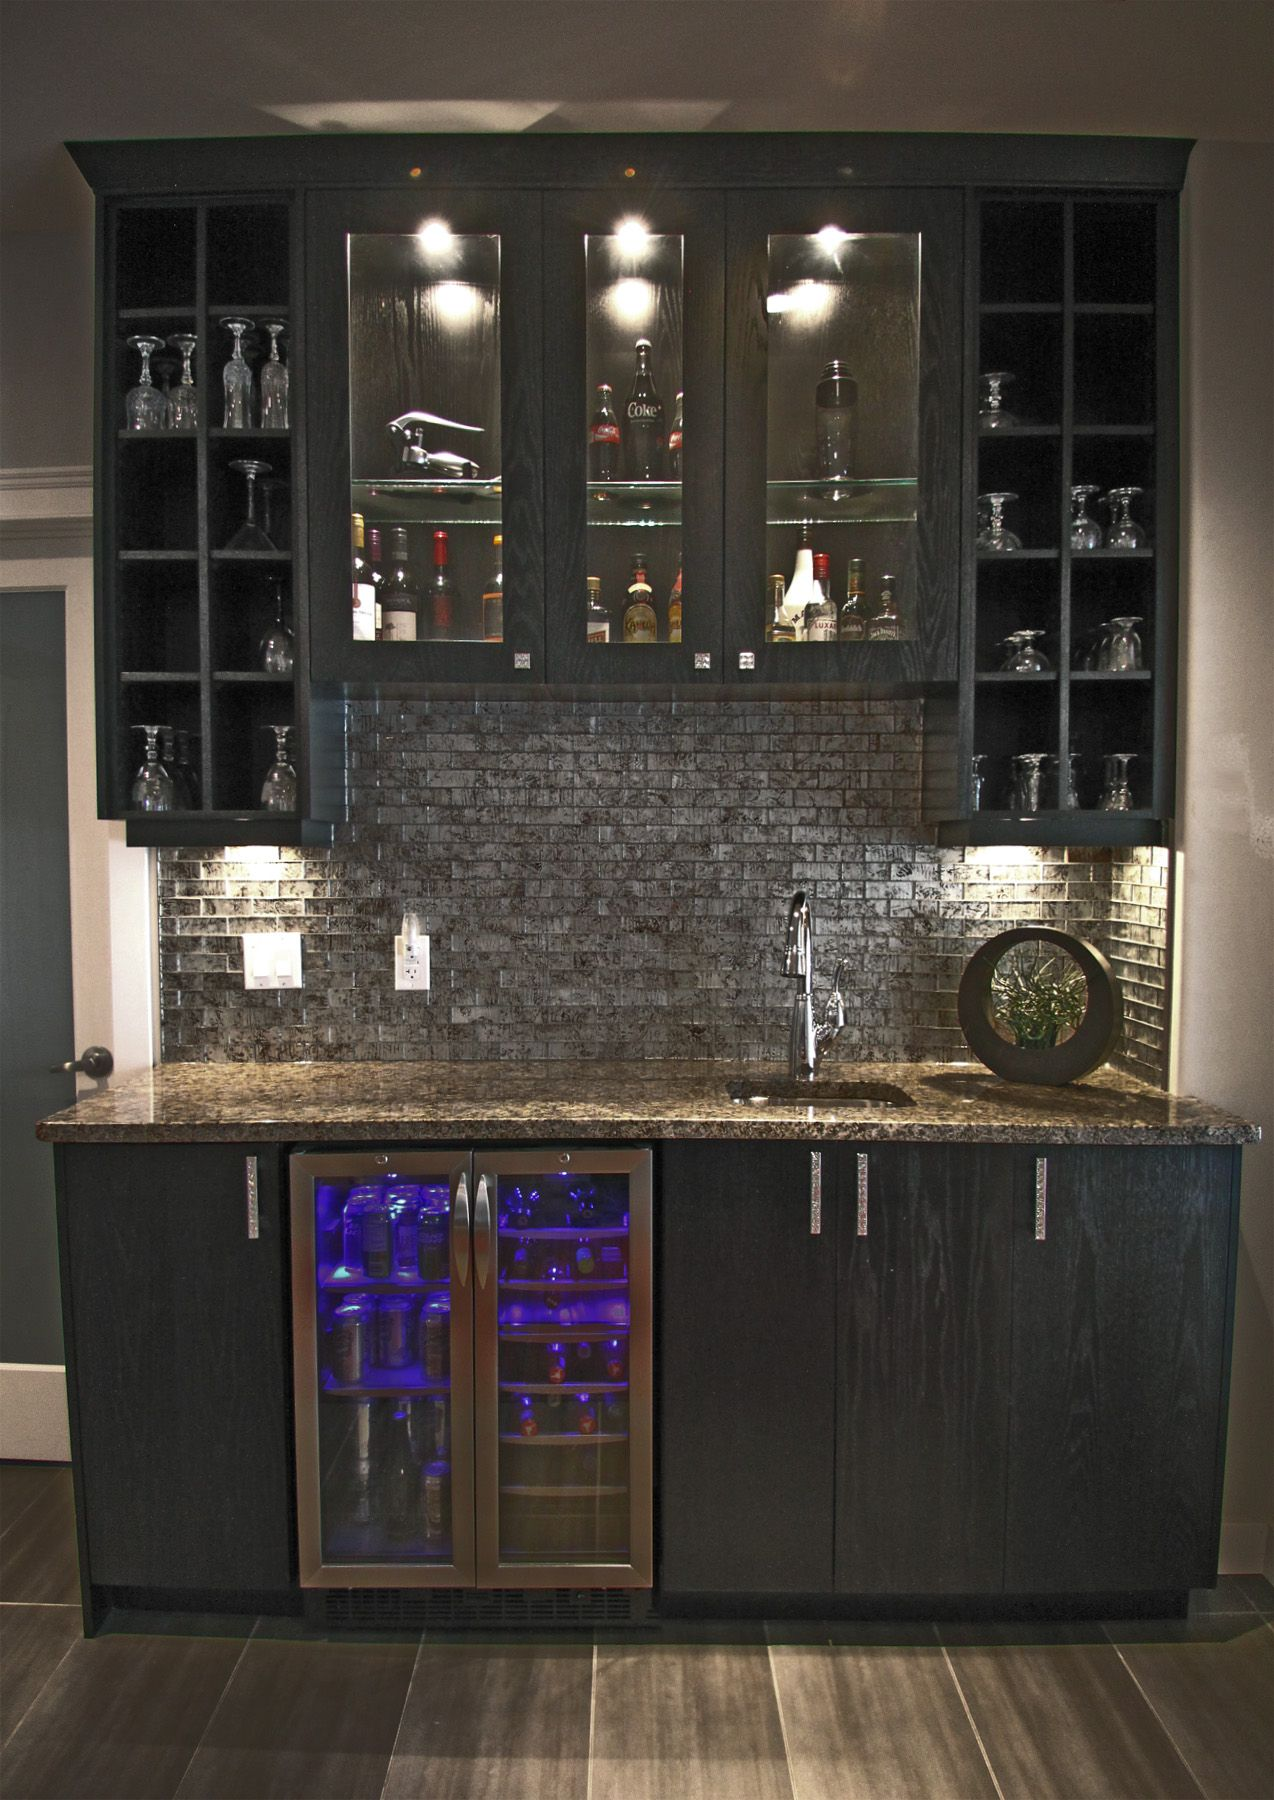 Home wet bar design w glass backsplash kitchen designs by delta our work pinterest wet Home bar design ideas pictures